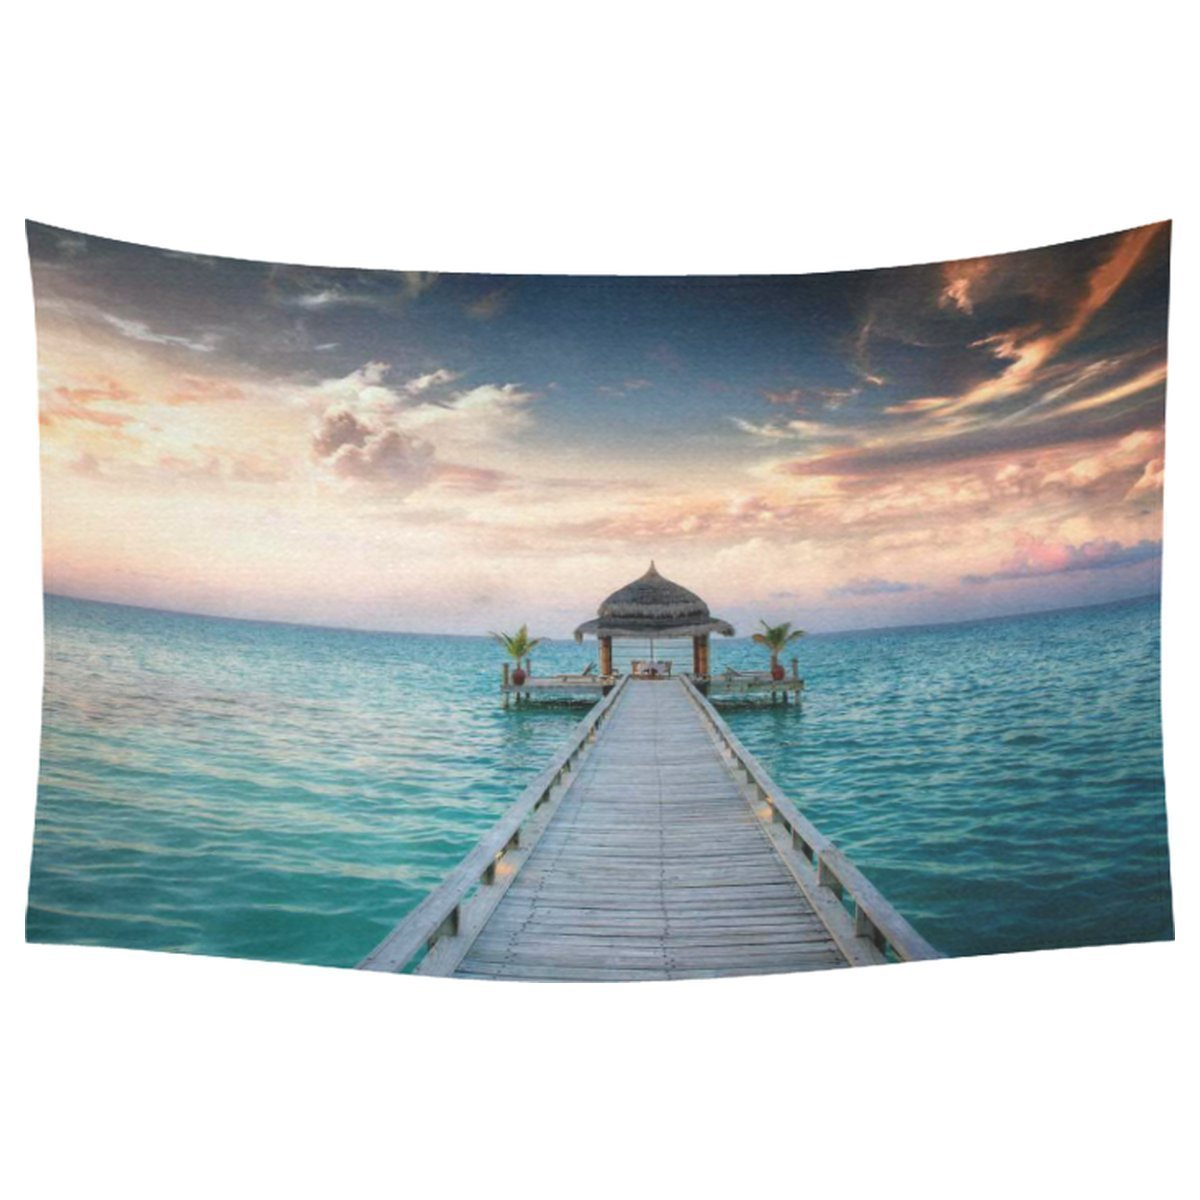 Bule Ocean Waves Wall Art Home Decor, Idyllic Arbor on Water, Maldive Island Cotton Linen Tapestry Wall Hanging Art